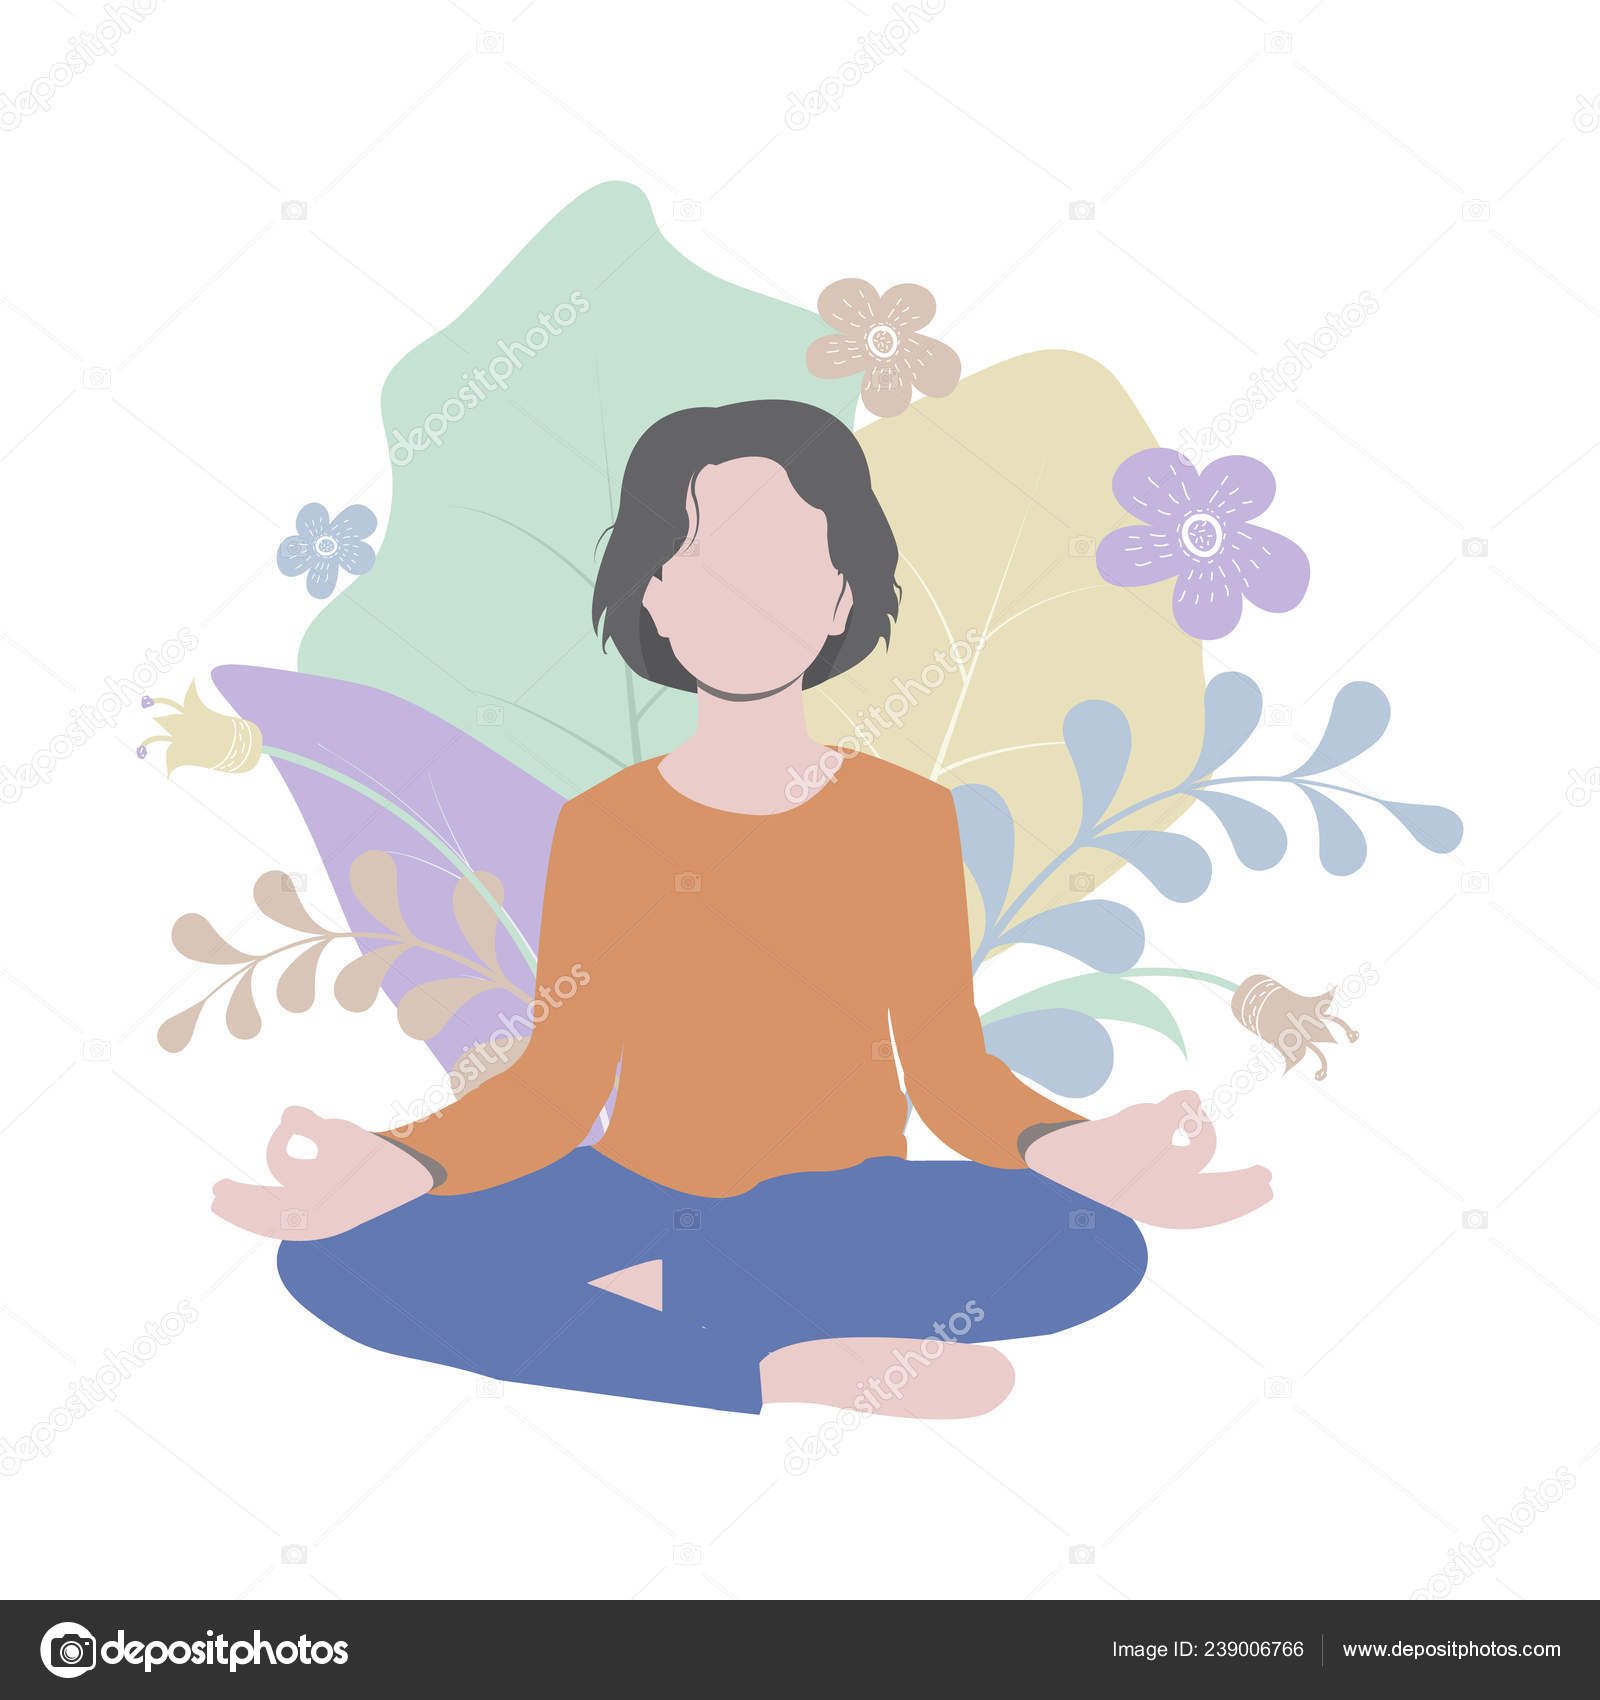 Young Woman Practicing Yoga Assana Lotus Position Meditation Simple Flat Stock Vector C Flammynga Yandex Ru 239006766